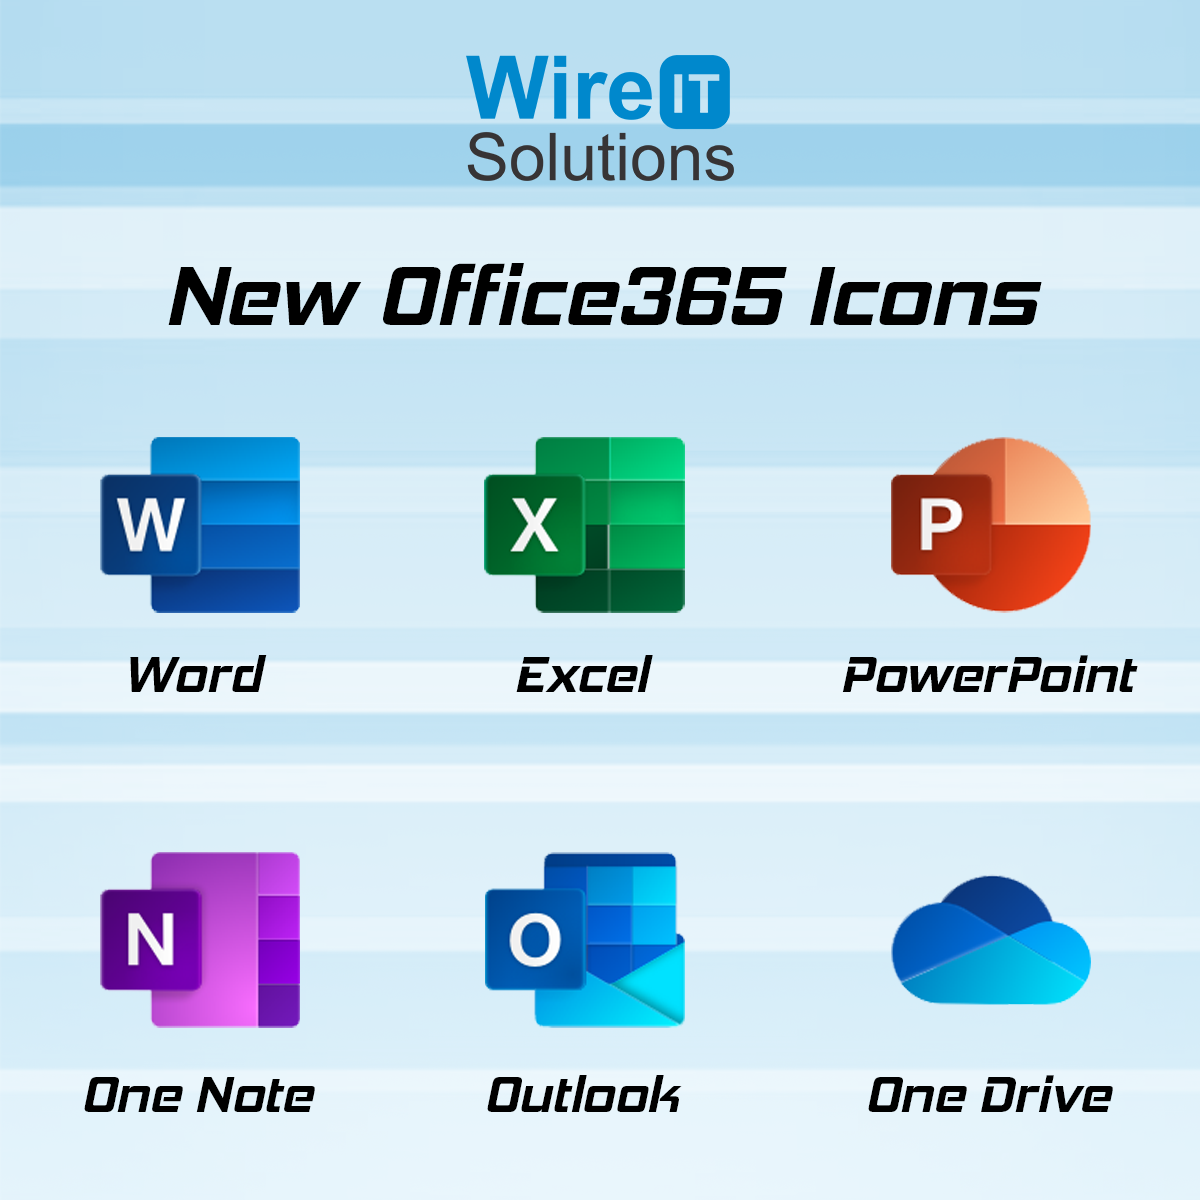 Microsoft Office new logos are here! #Microsoft #MicrosoftOffice